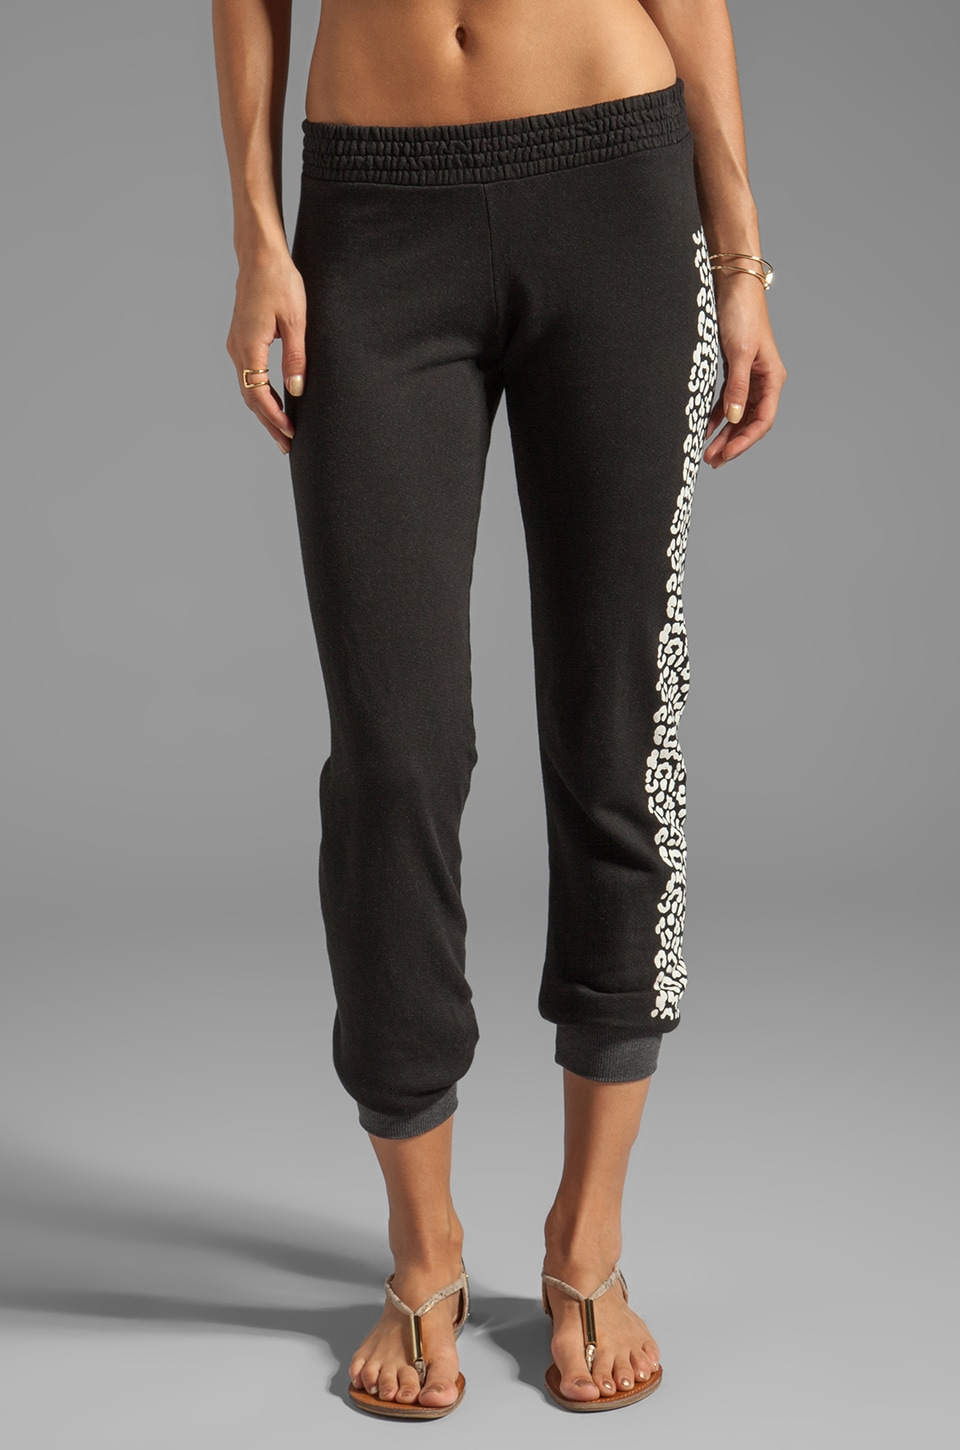 291 Les Amants Slim Track Pant in Black